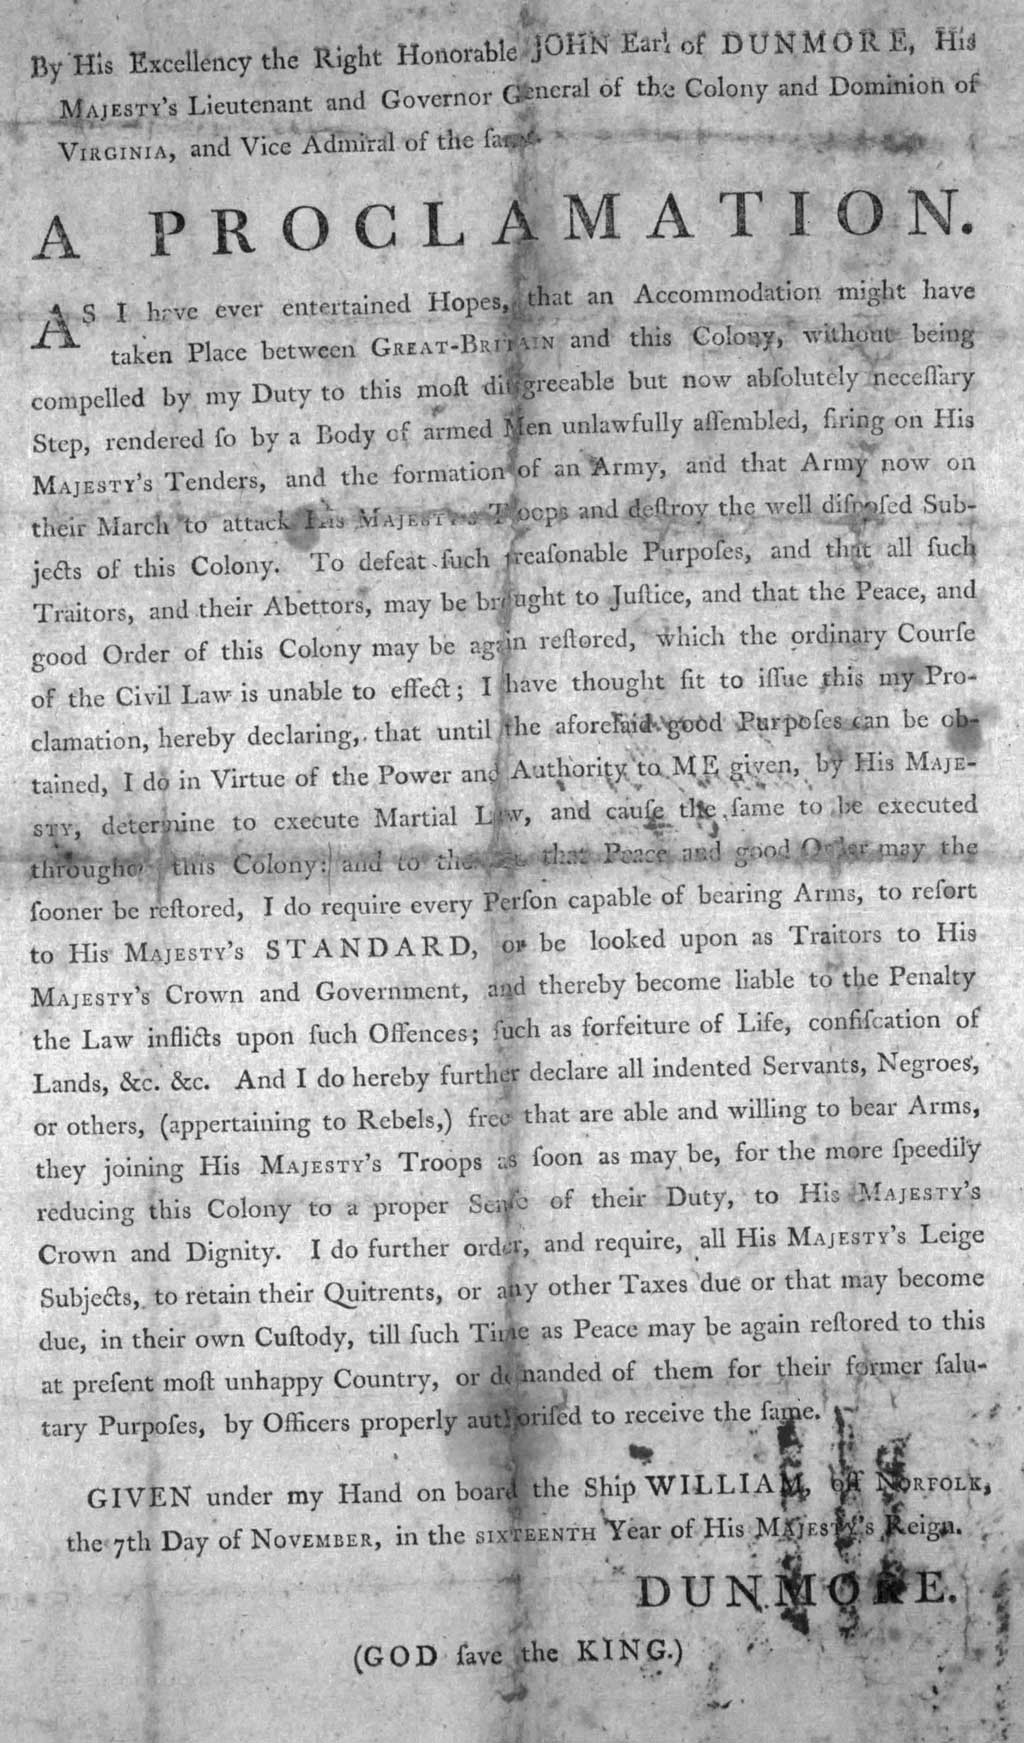 A copy of Dunmore's Proclamation, issued November 7, 1775